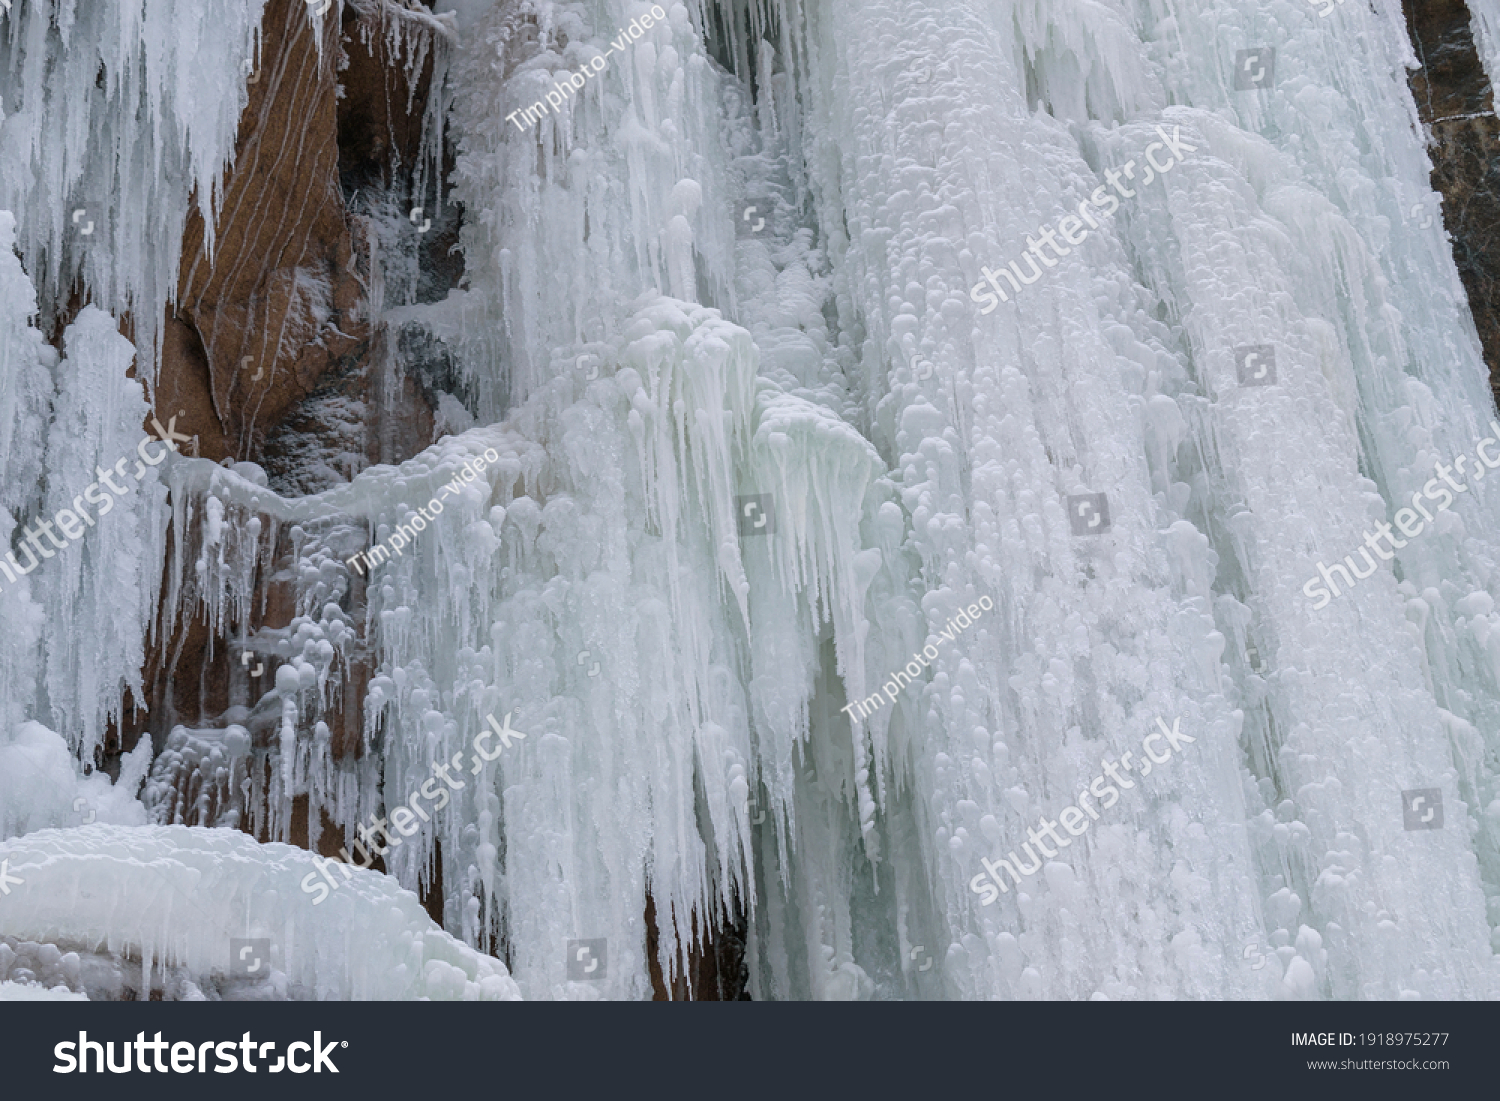 stock-photo-frozen-stream-of-water-on-th